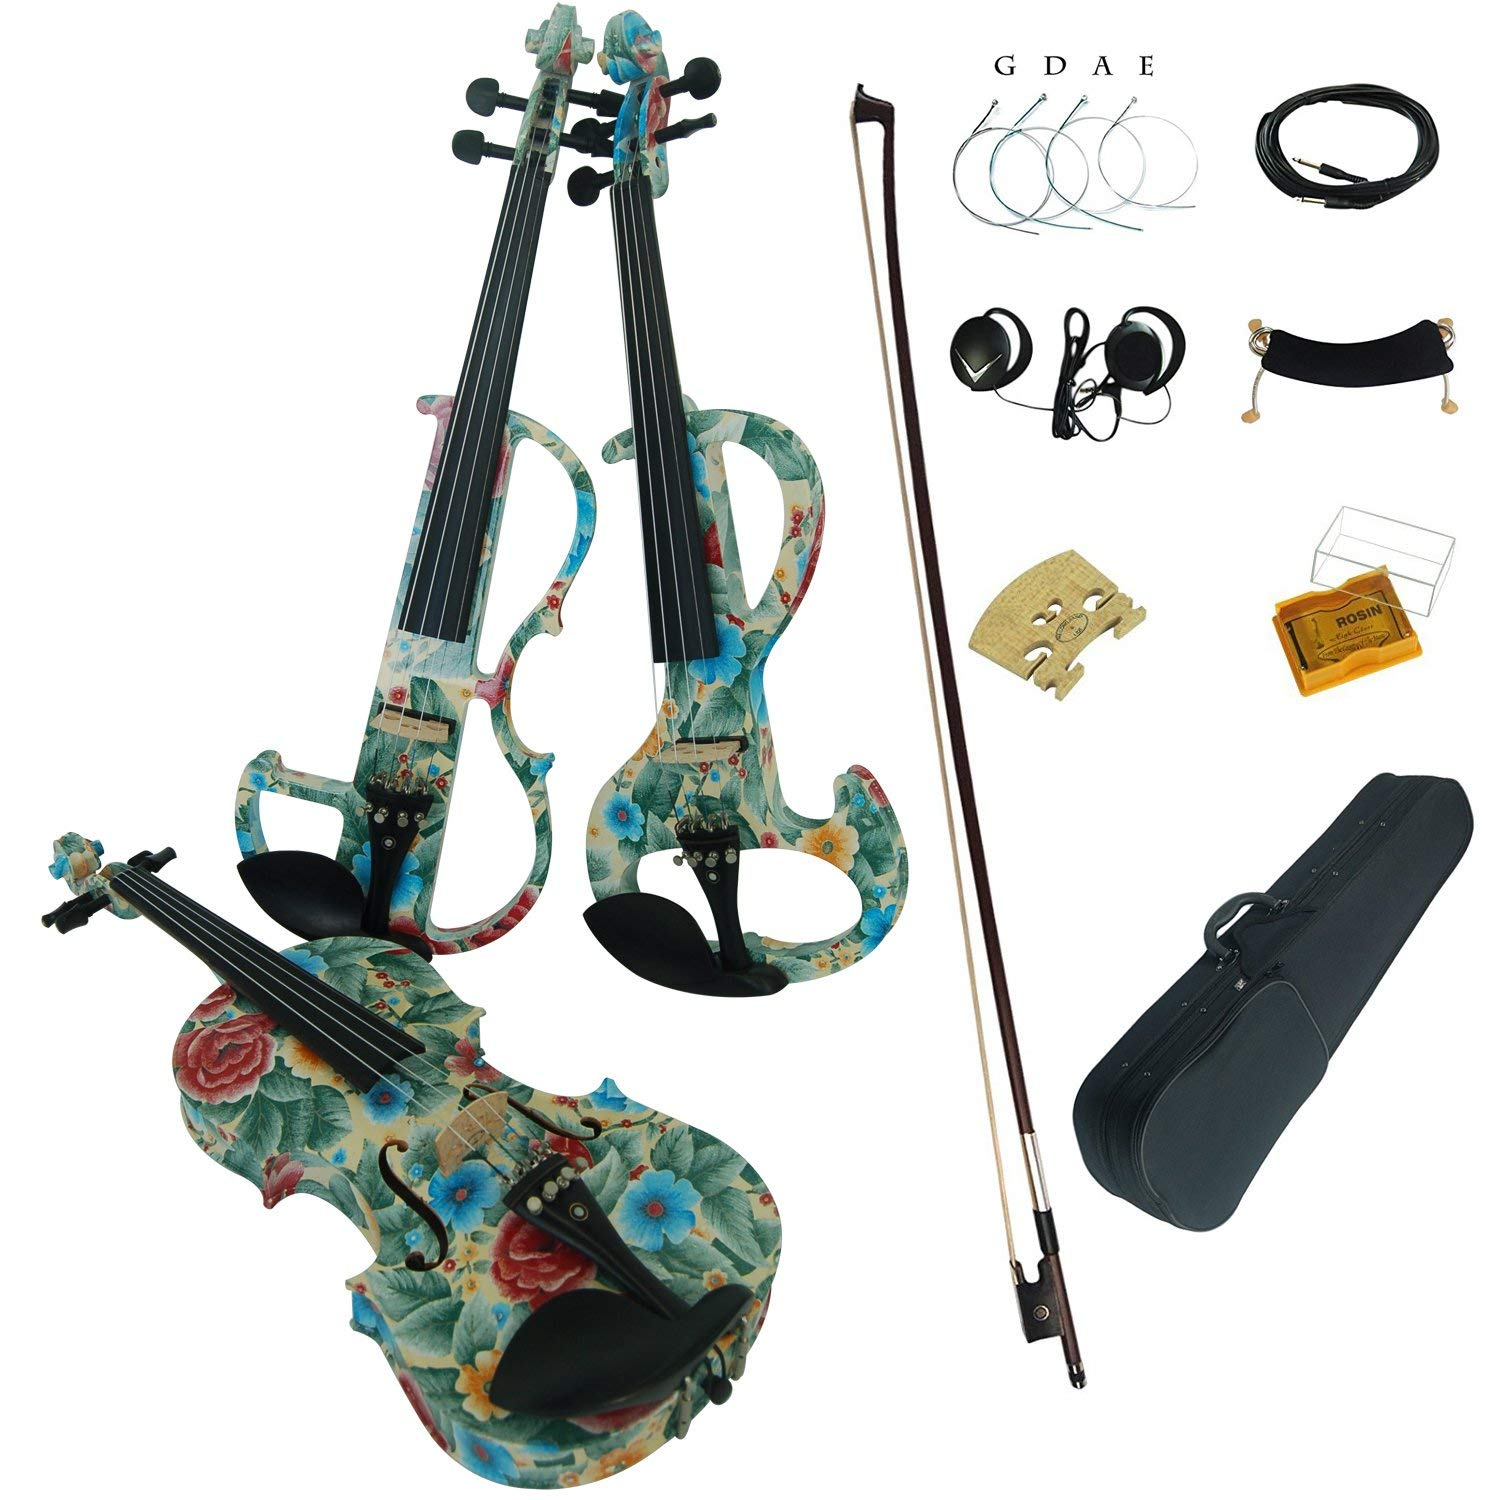 Aliyes Acoustic Violins Full Size Solid Wood Intermediate Green leaves&flowers Violin Kit For Beginners With Case,Shoulder Rest,Bow,Rosin,Extra Bridge And Strings(ALYSDS-1102)